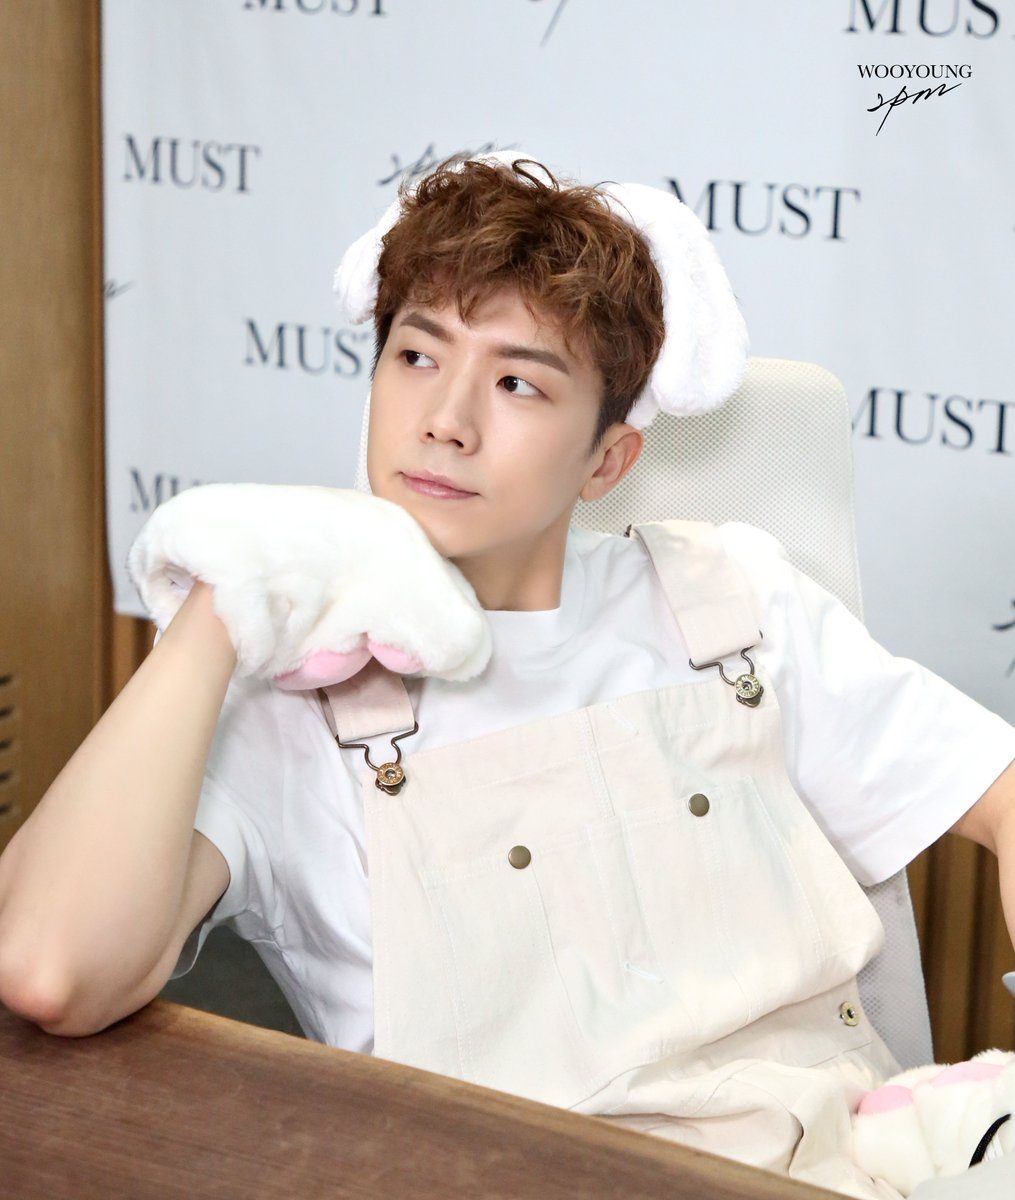 @follow_2PM's photo on wooyoung